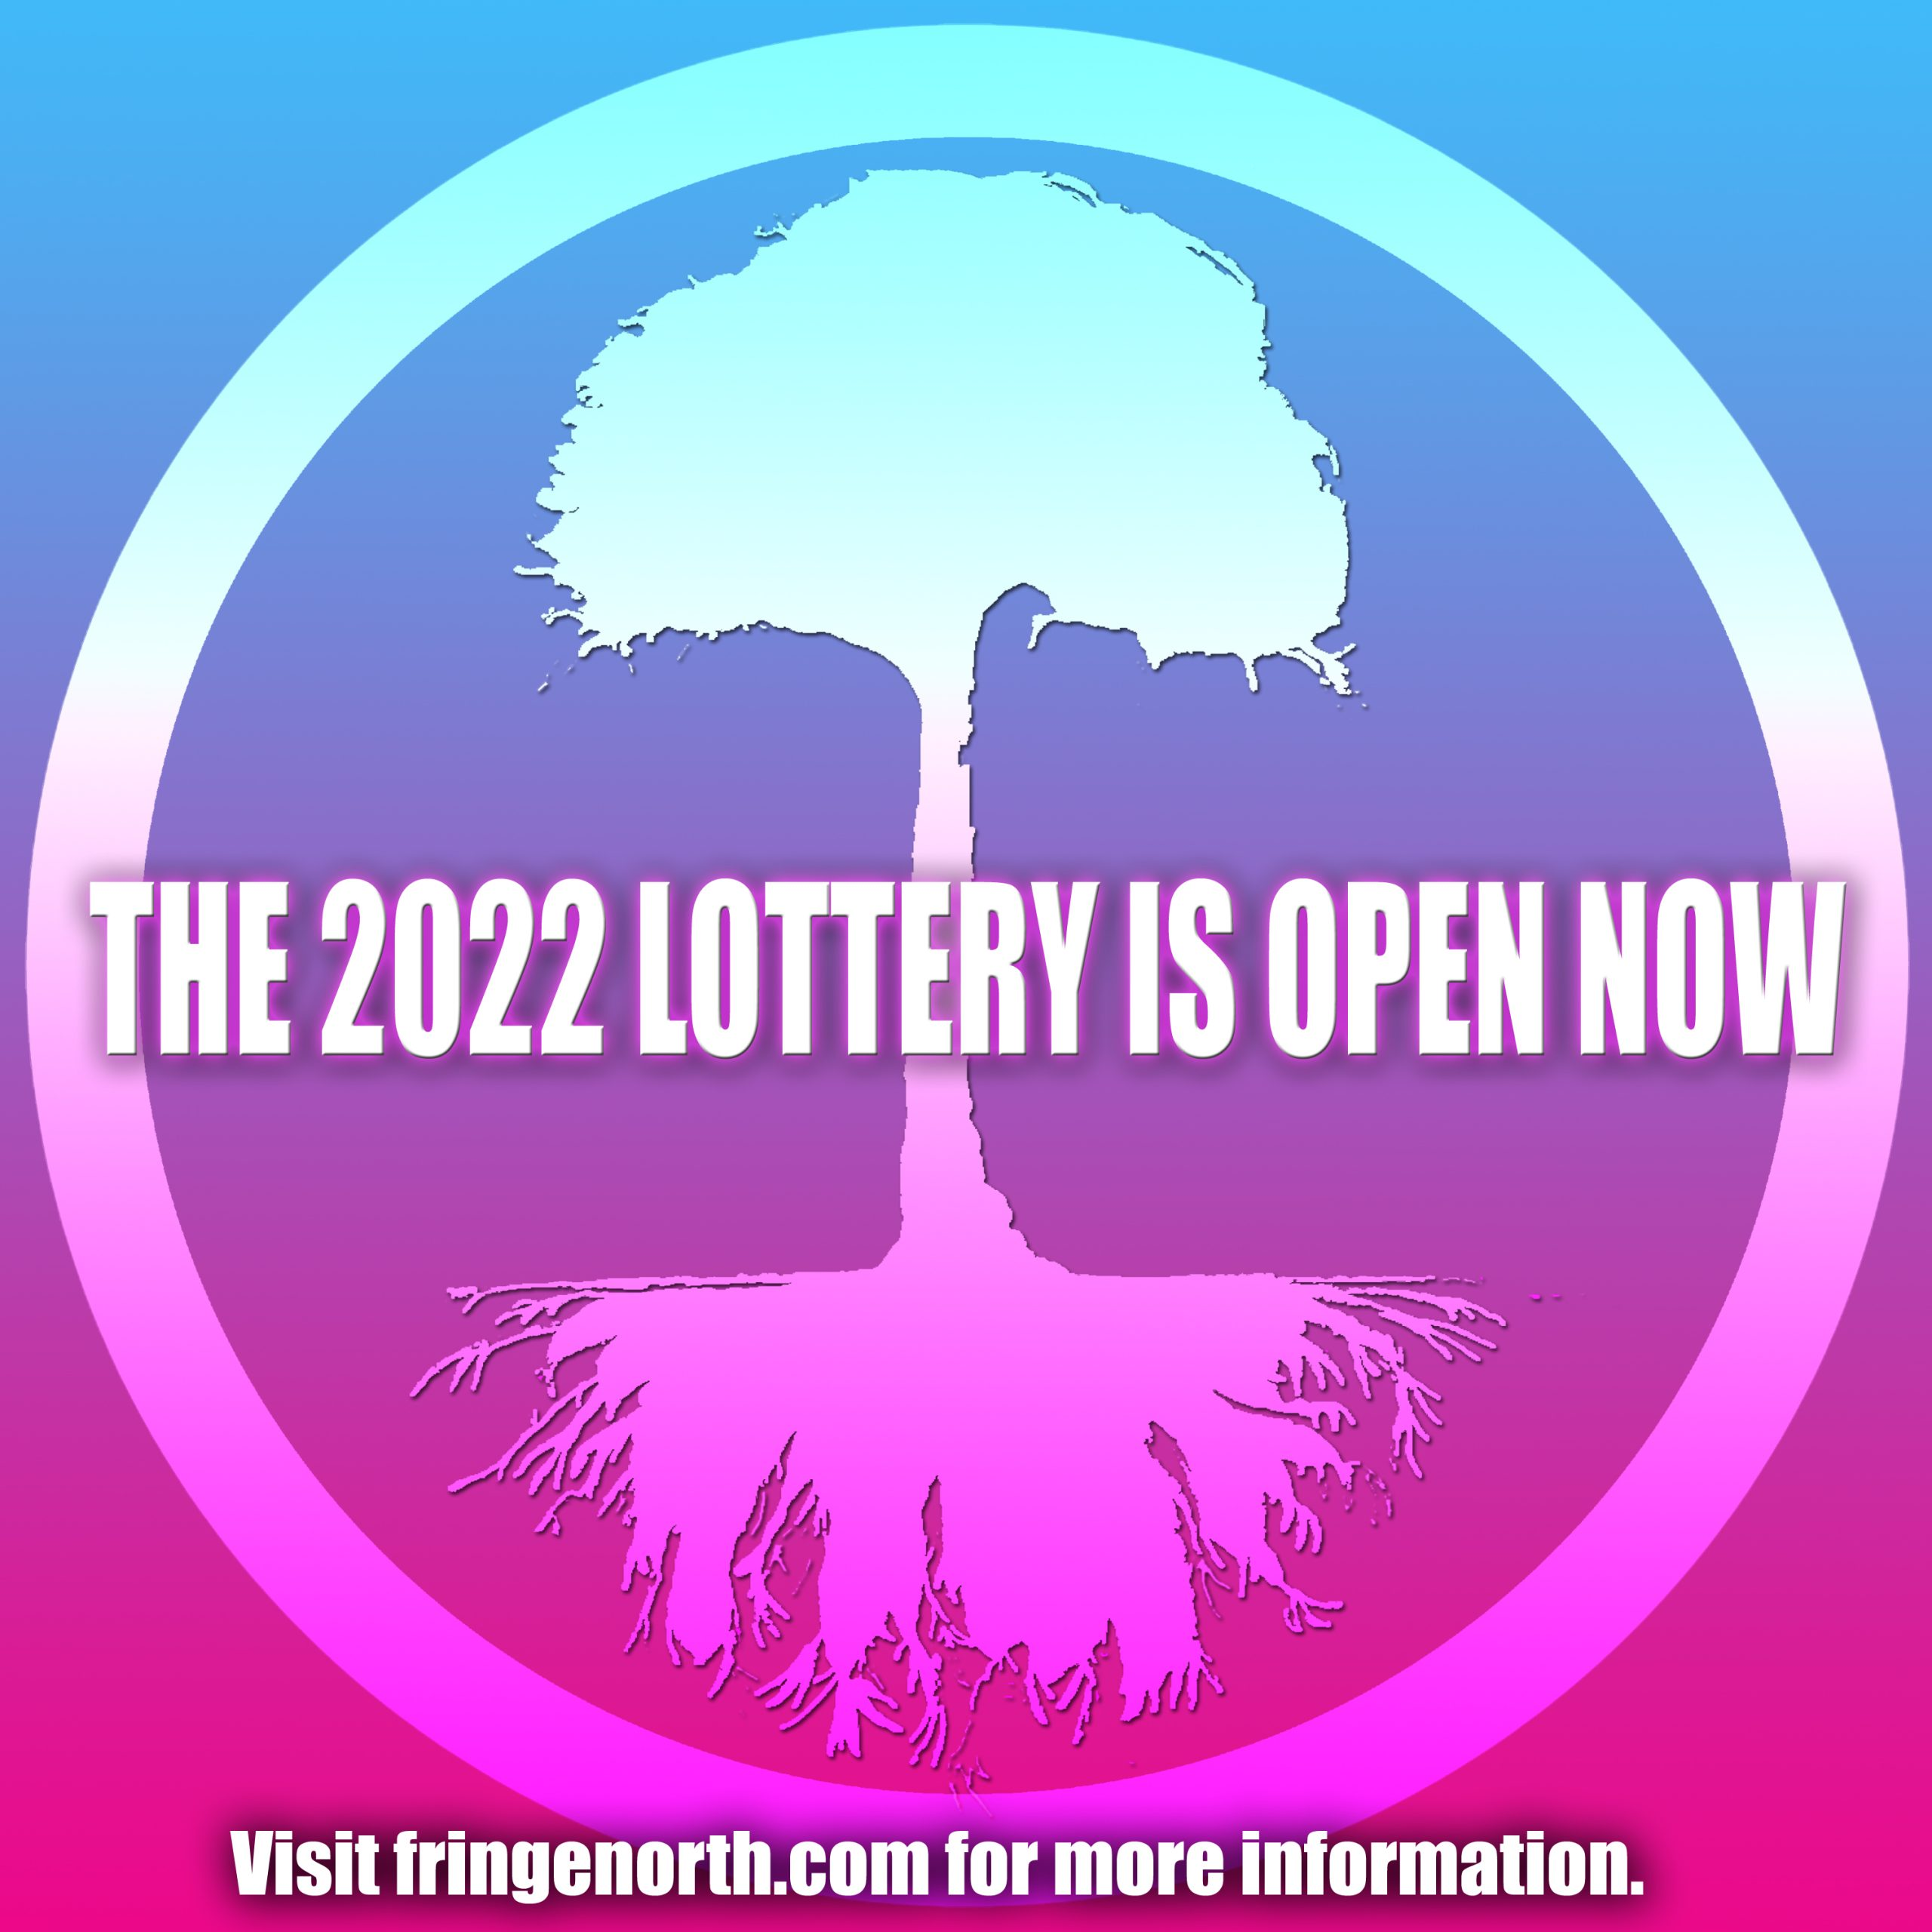 """The image shows the Fringe tree silhouetted within a circle on top of a gradient background that shifts from light blue at the top to magenta at the bottom. Across the middle of the circle and tree is the text """"The 2022 Lottery is Open Now"""". At the bottom it says """"Visit fringenorth.com for more information""""."""